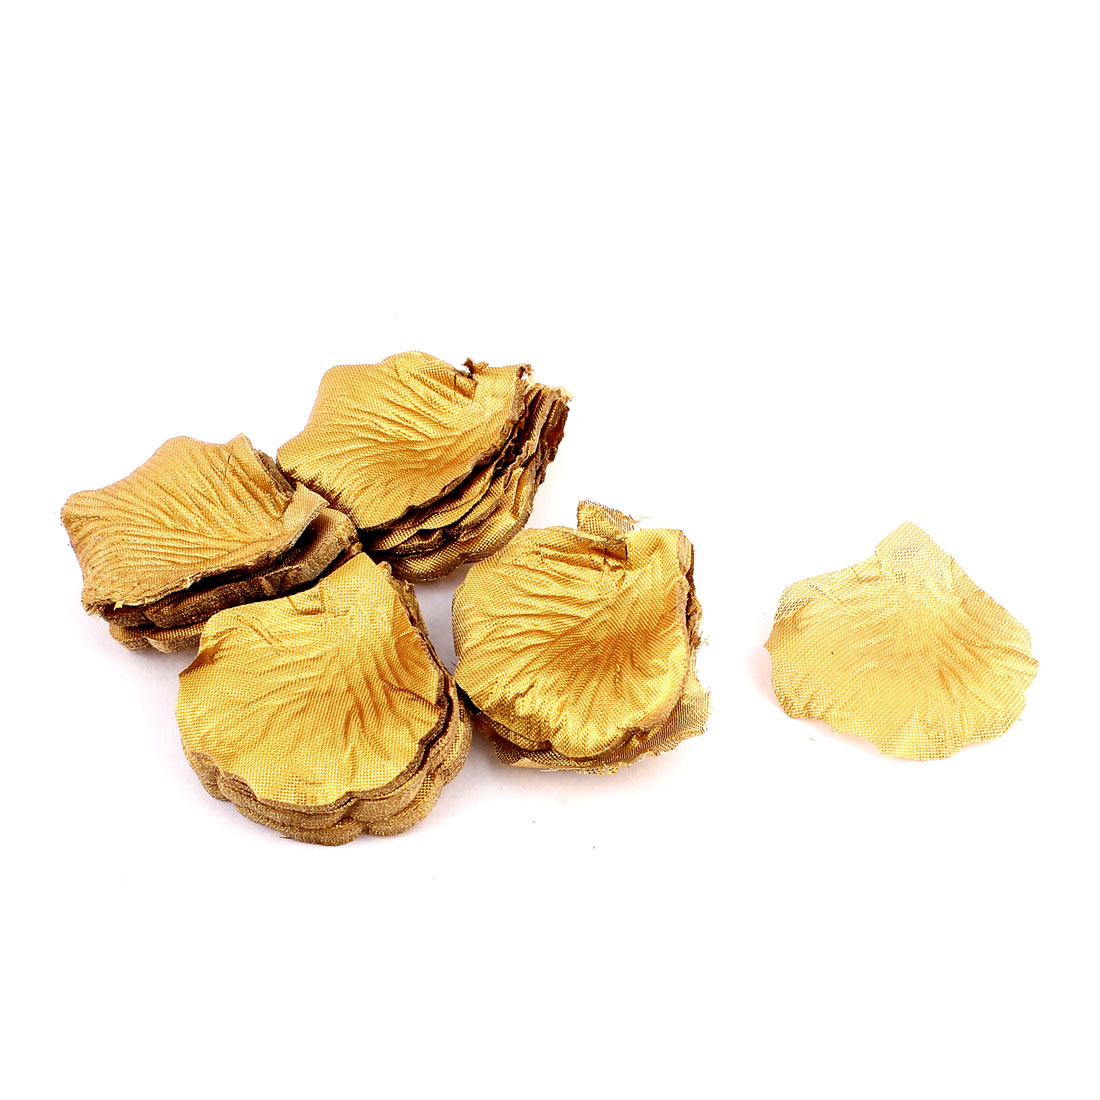 Silk Rose Flower Petals Wedding Party Celebration Decor 2000 Pcs Gold Tone